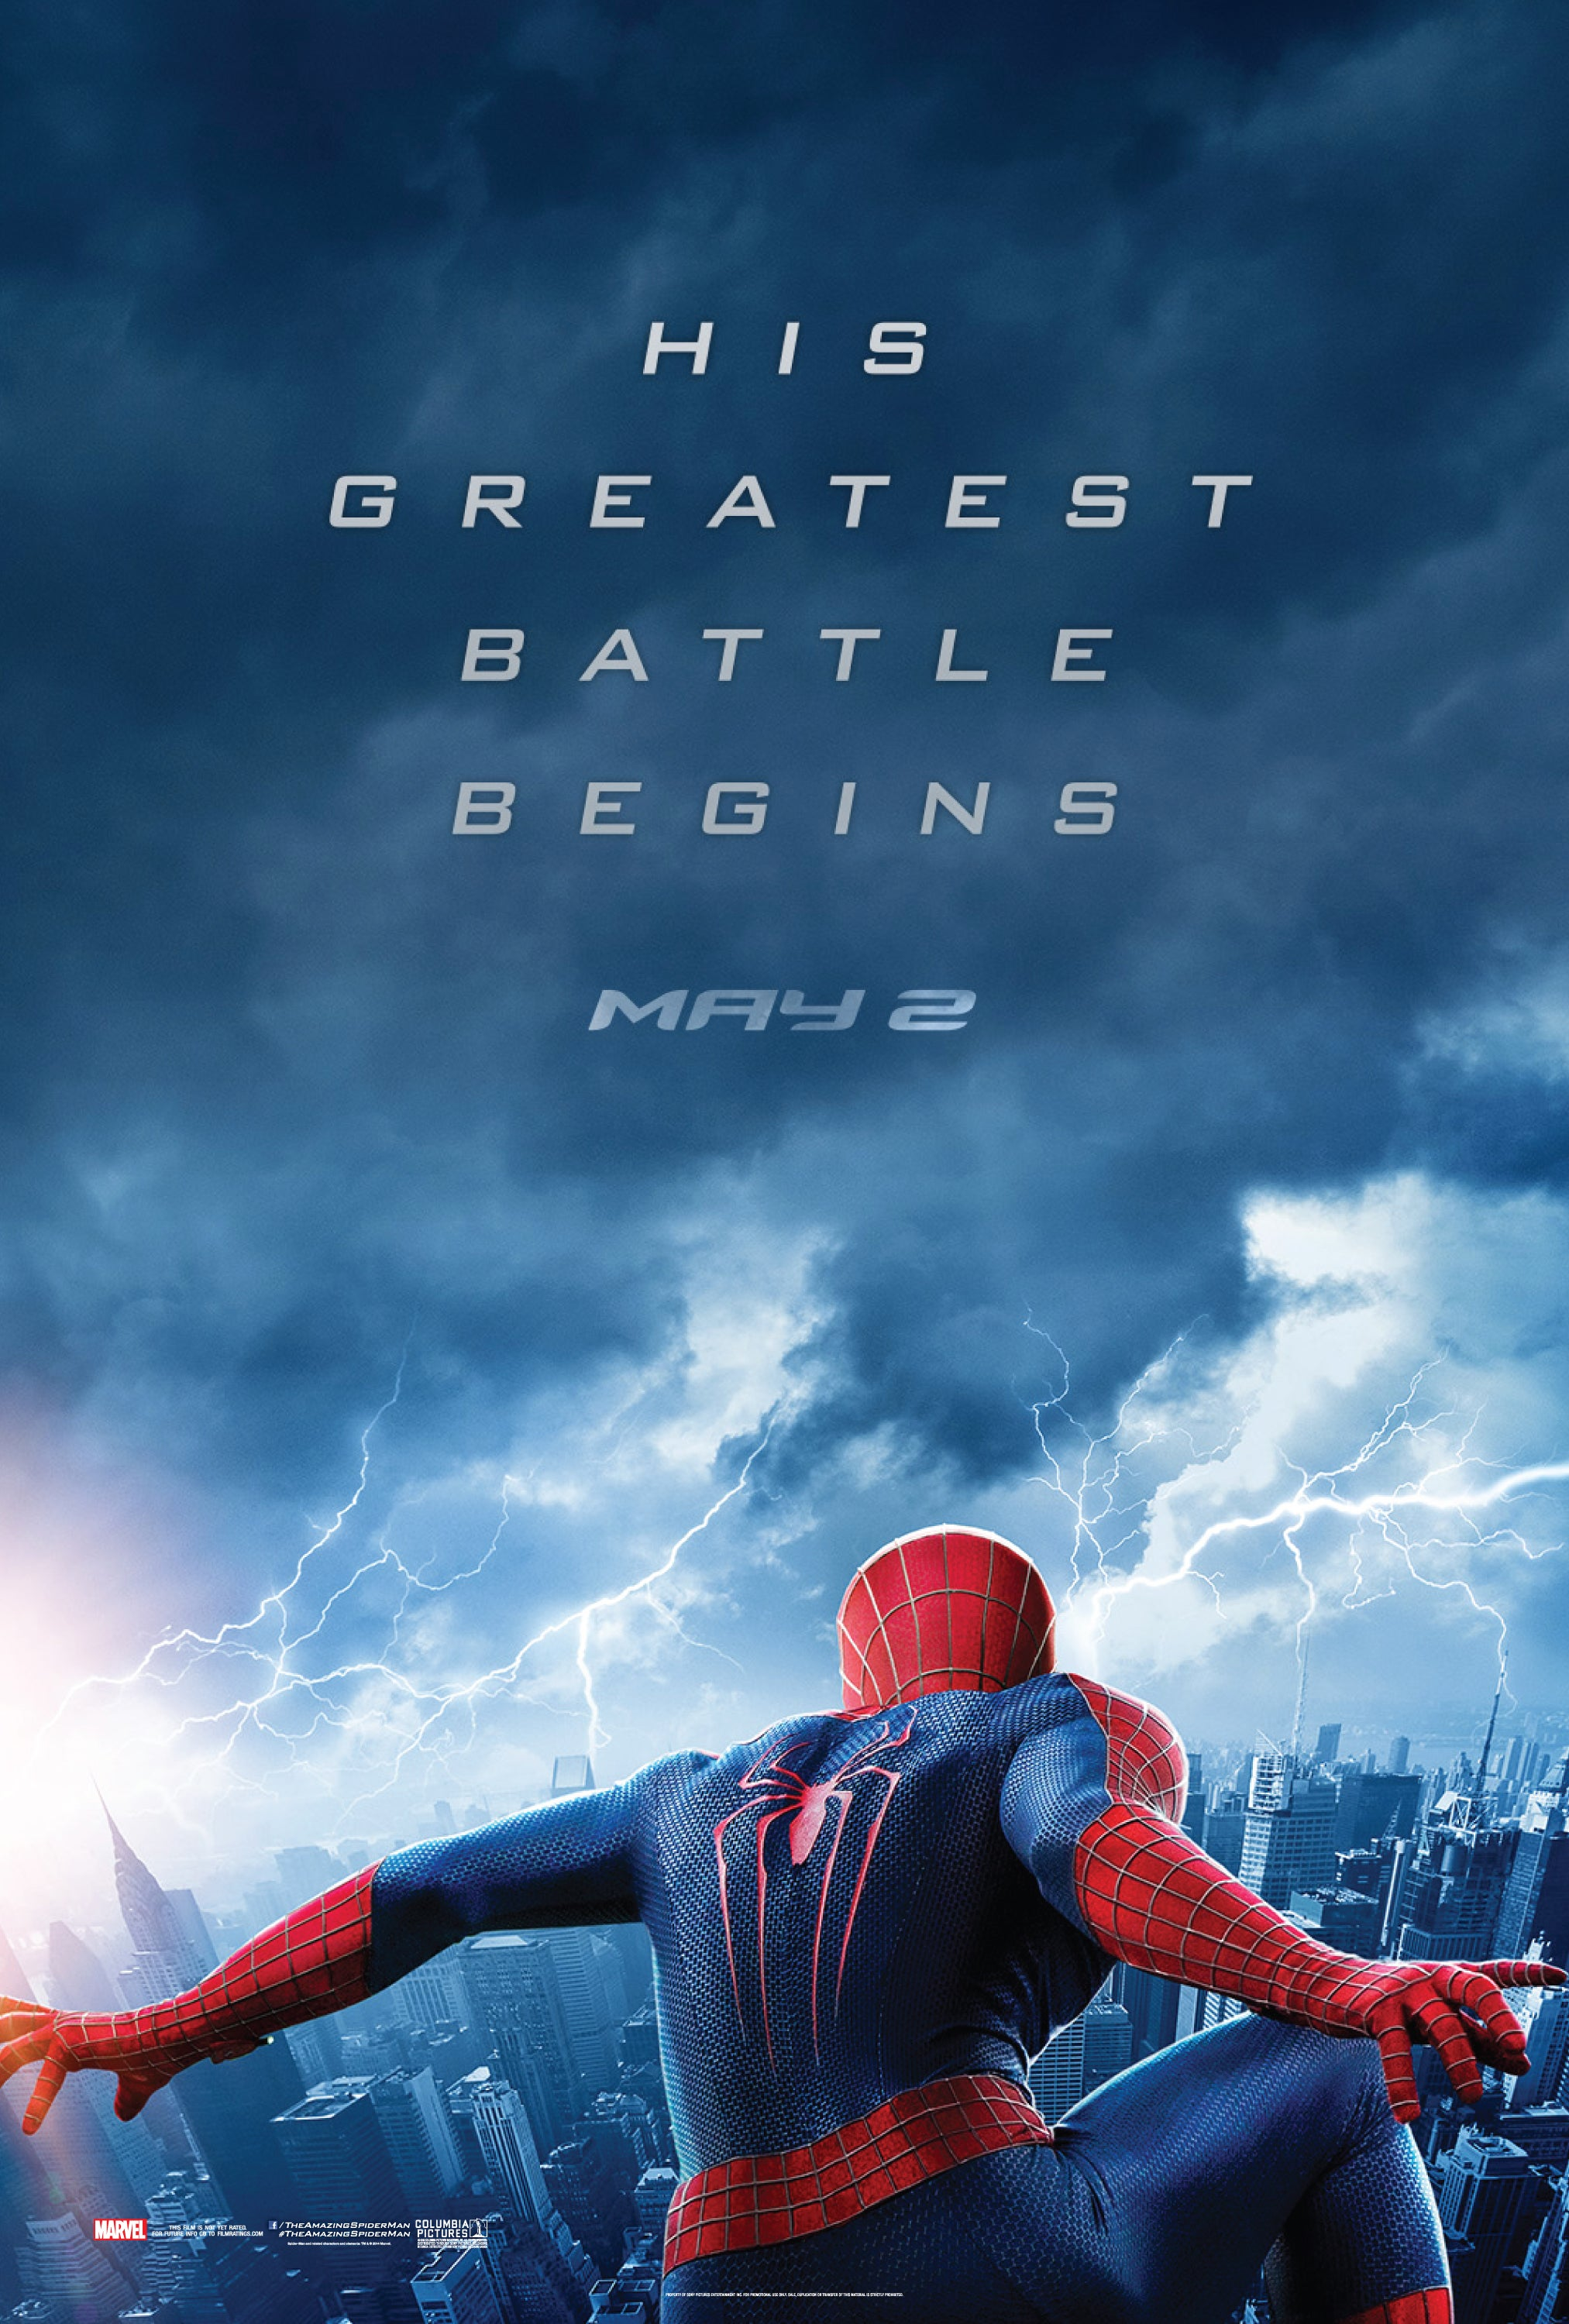 The amazing spider man 2 teaser poster released